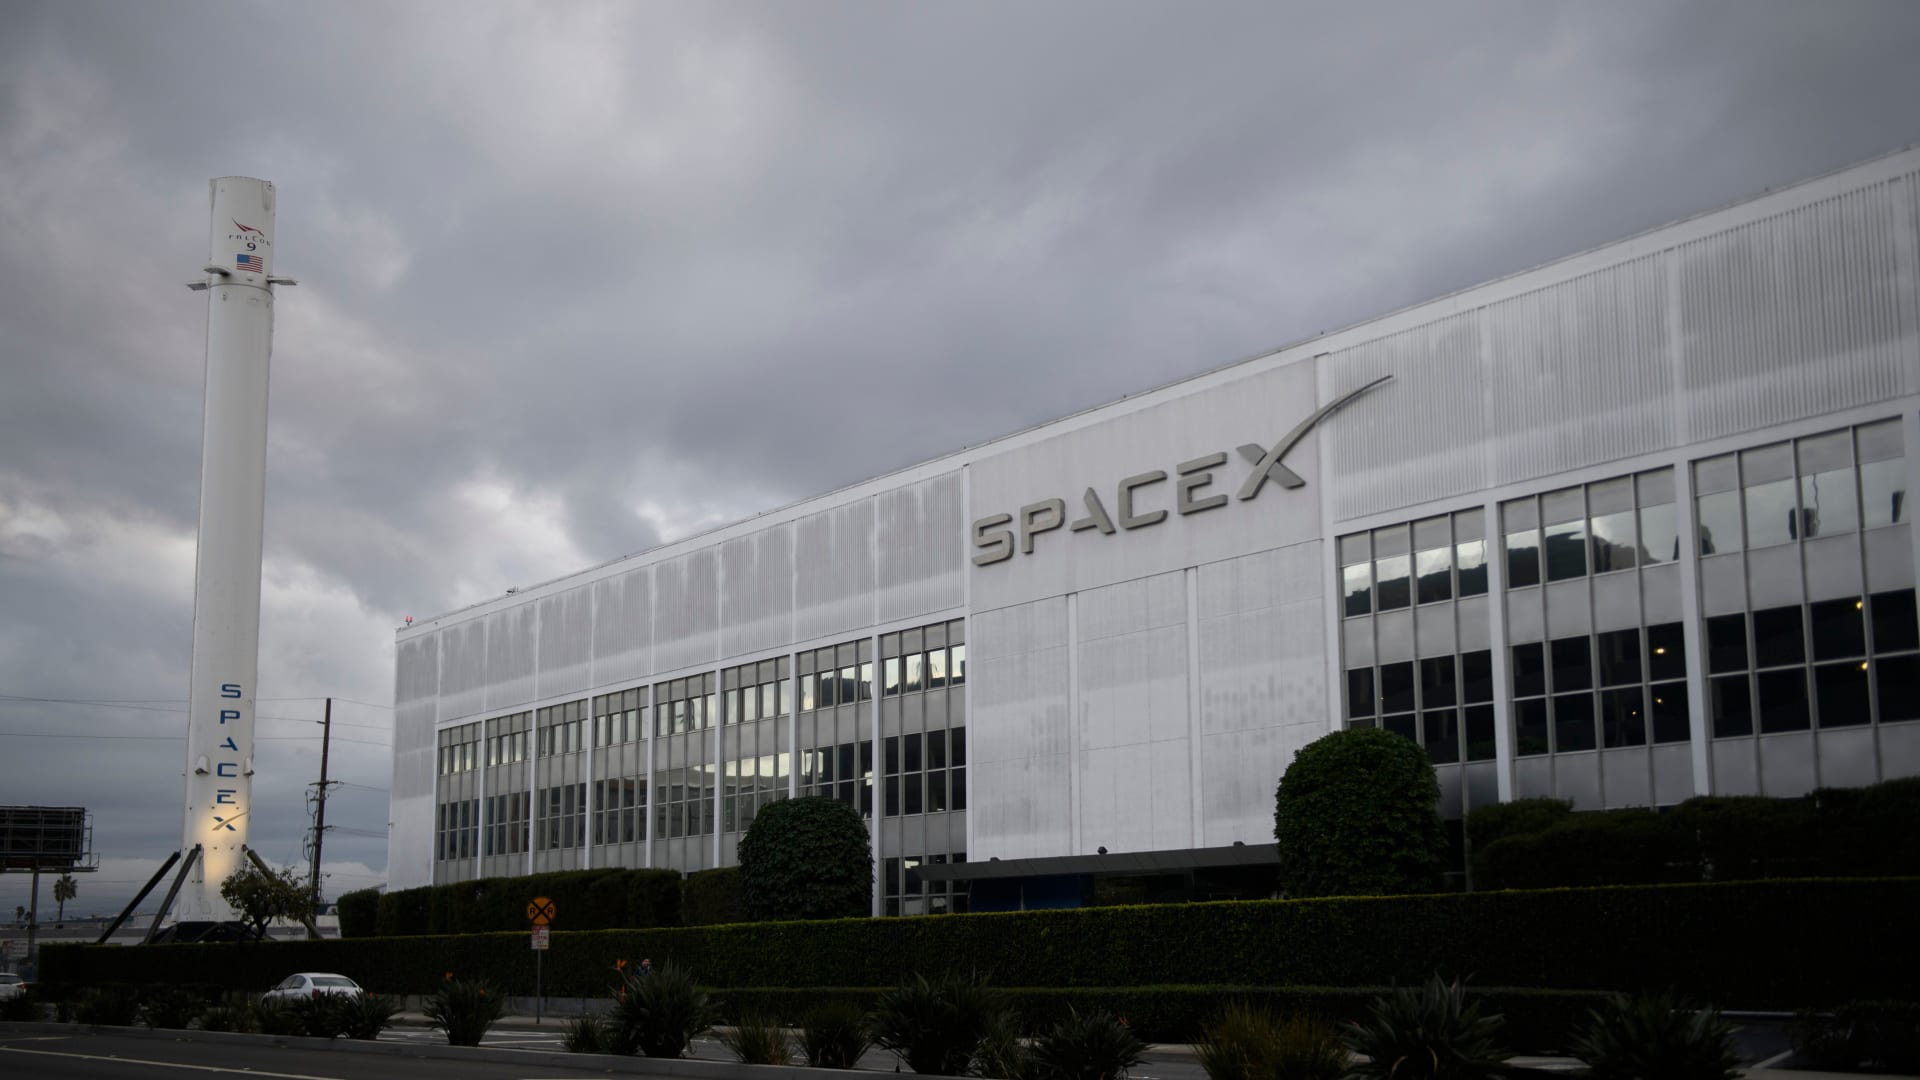 A Falcon 9 rocket is displayed outside the Space Exploration Technologies Corp. (SpaceX) headquarters on January 28, 2021 in Hawthorne, California.